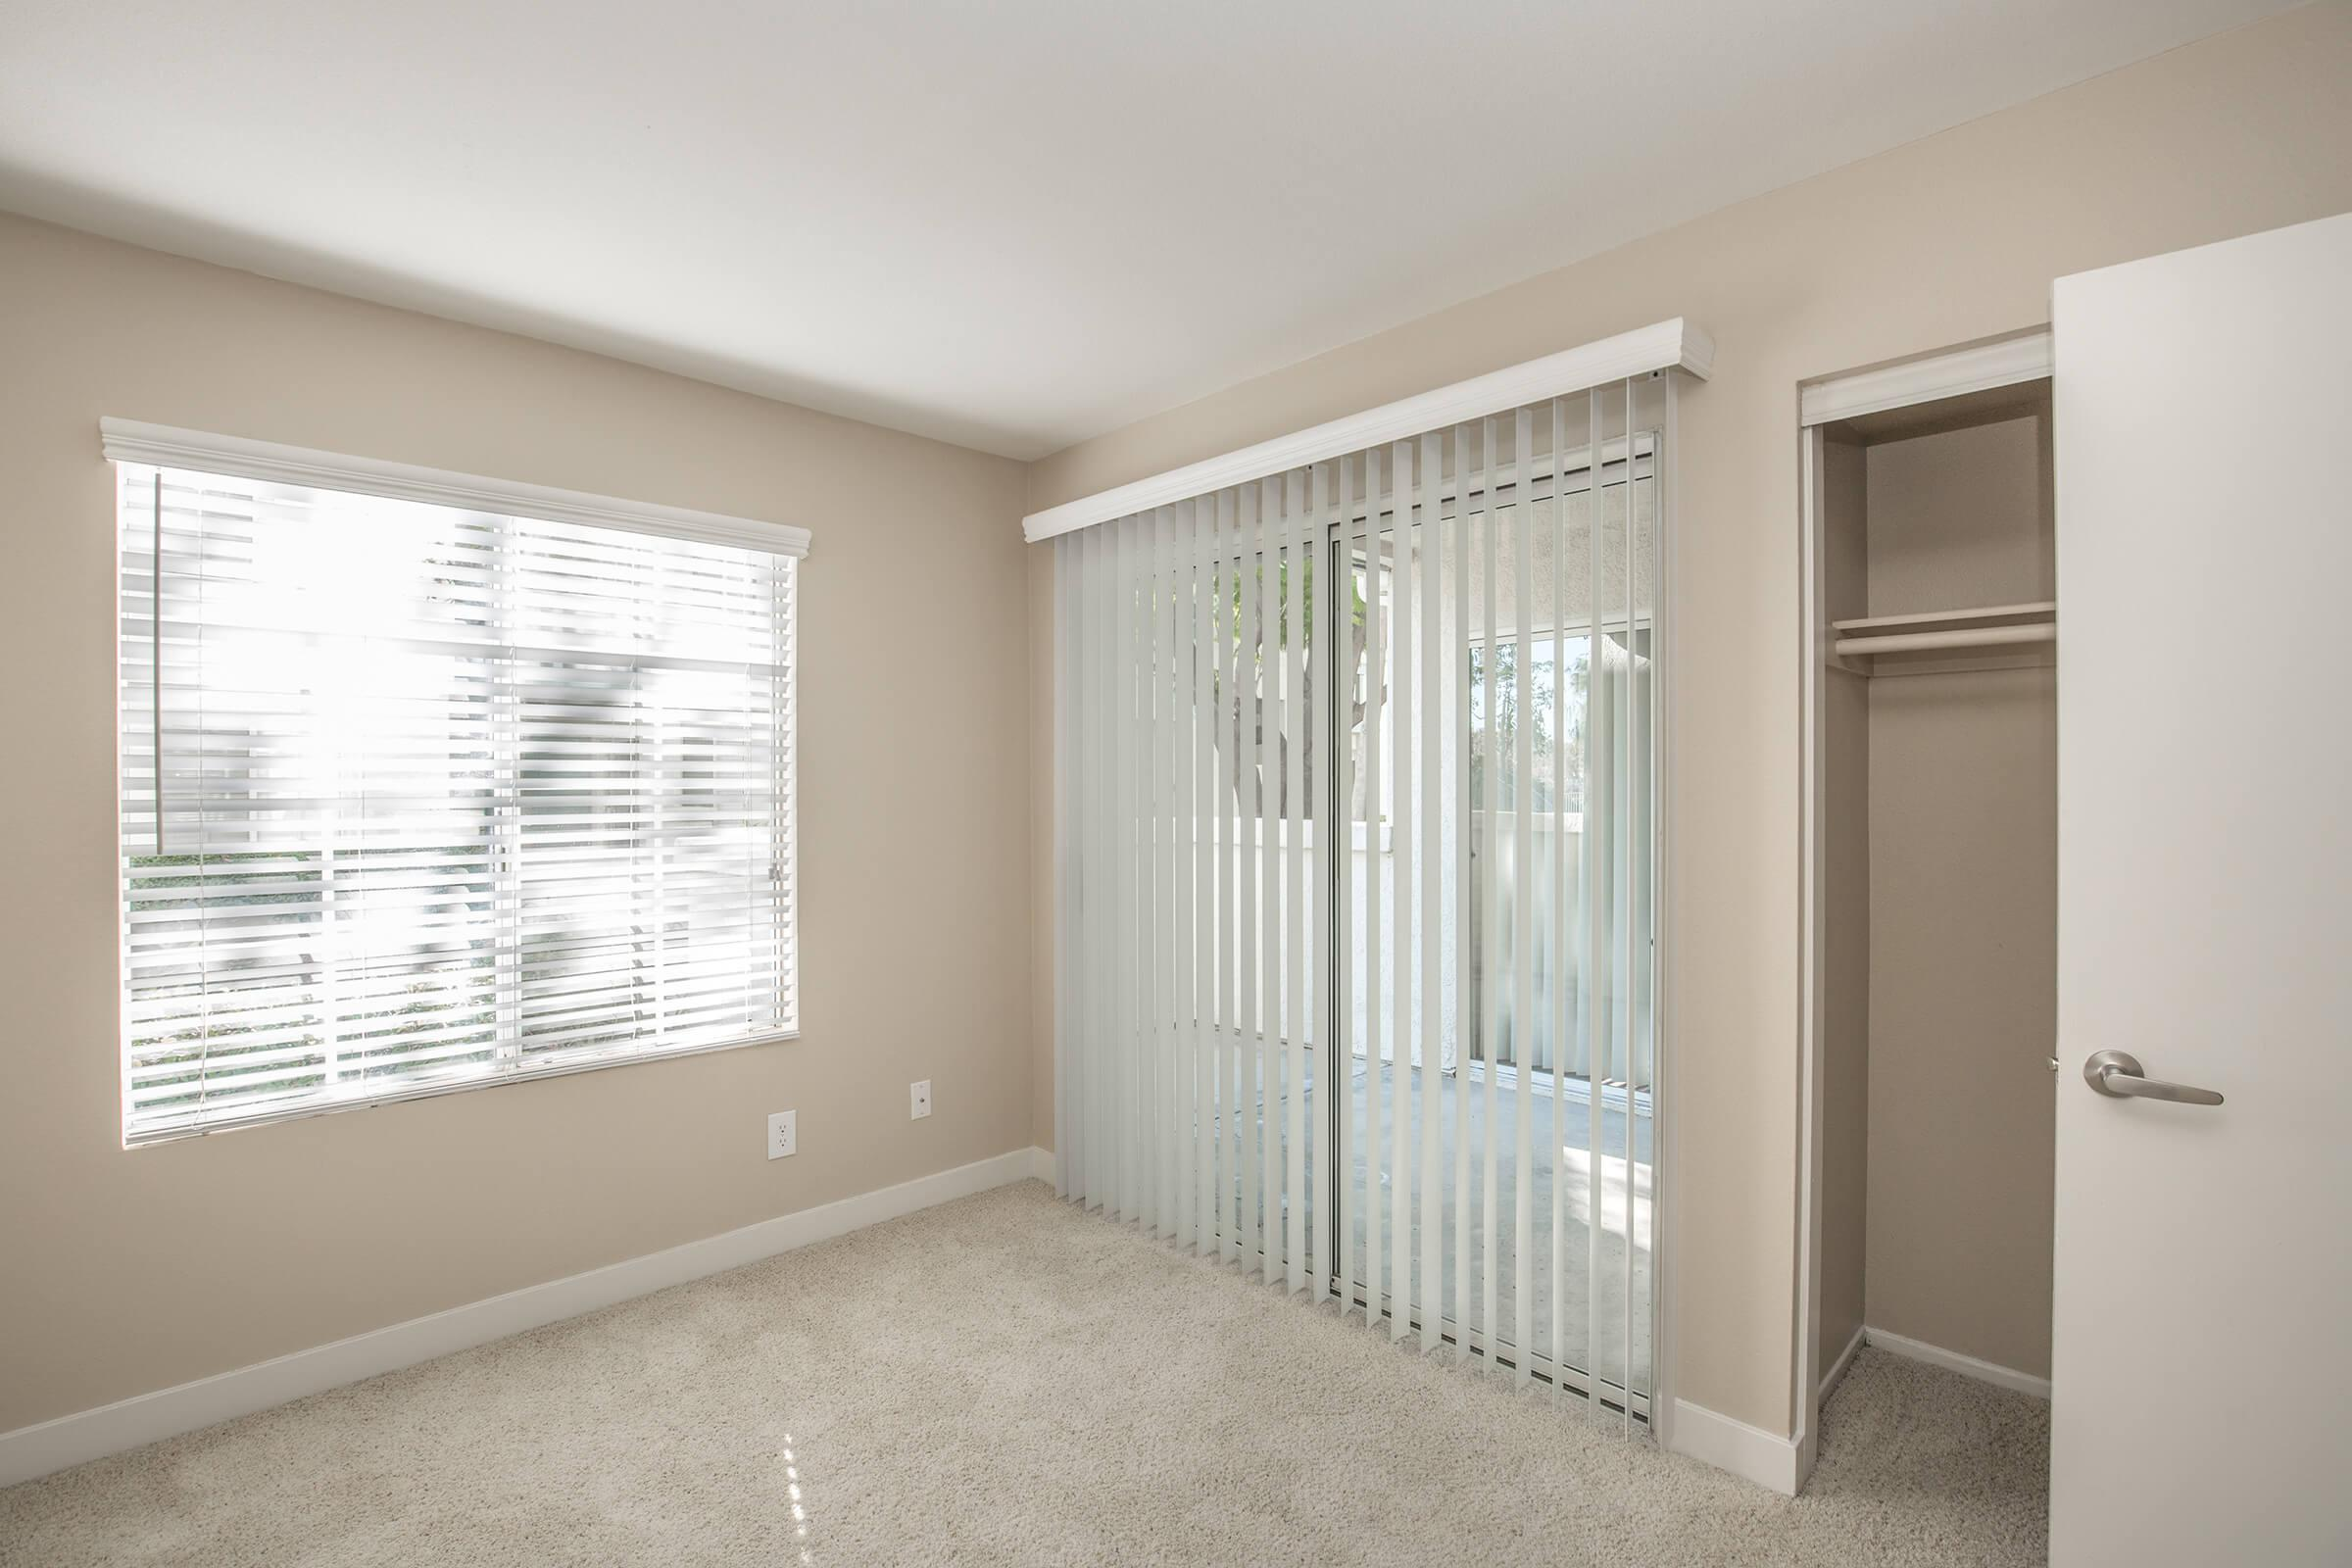 Unfurnished bedroom with glass sliding doors to patio